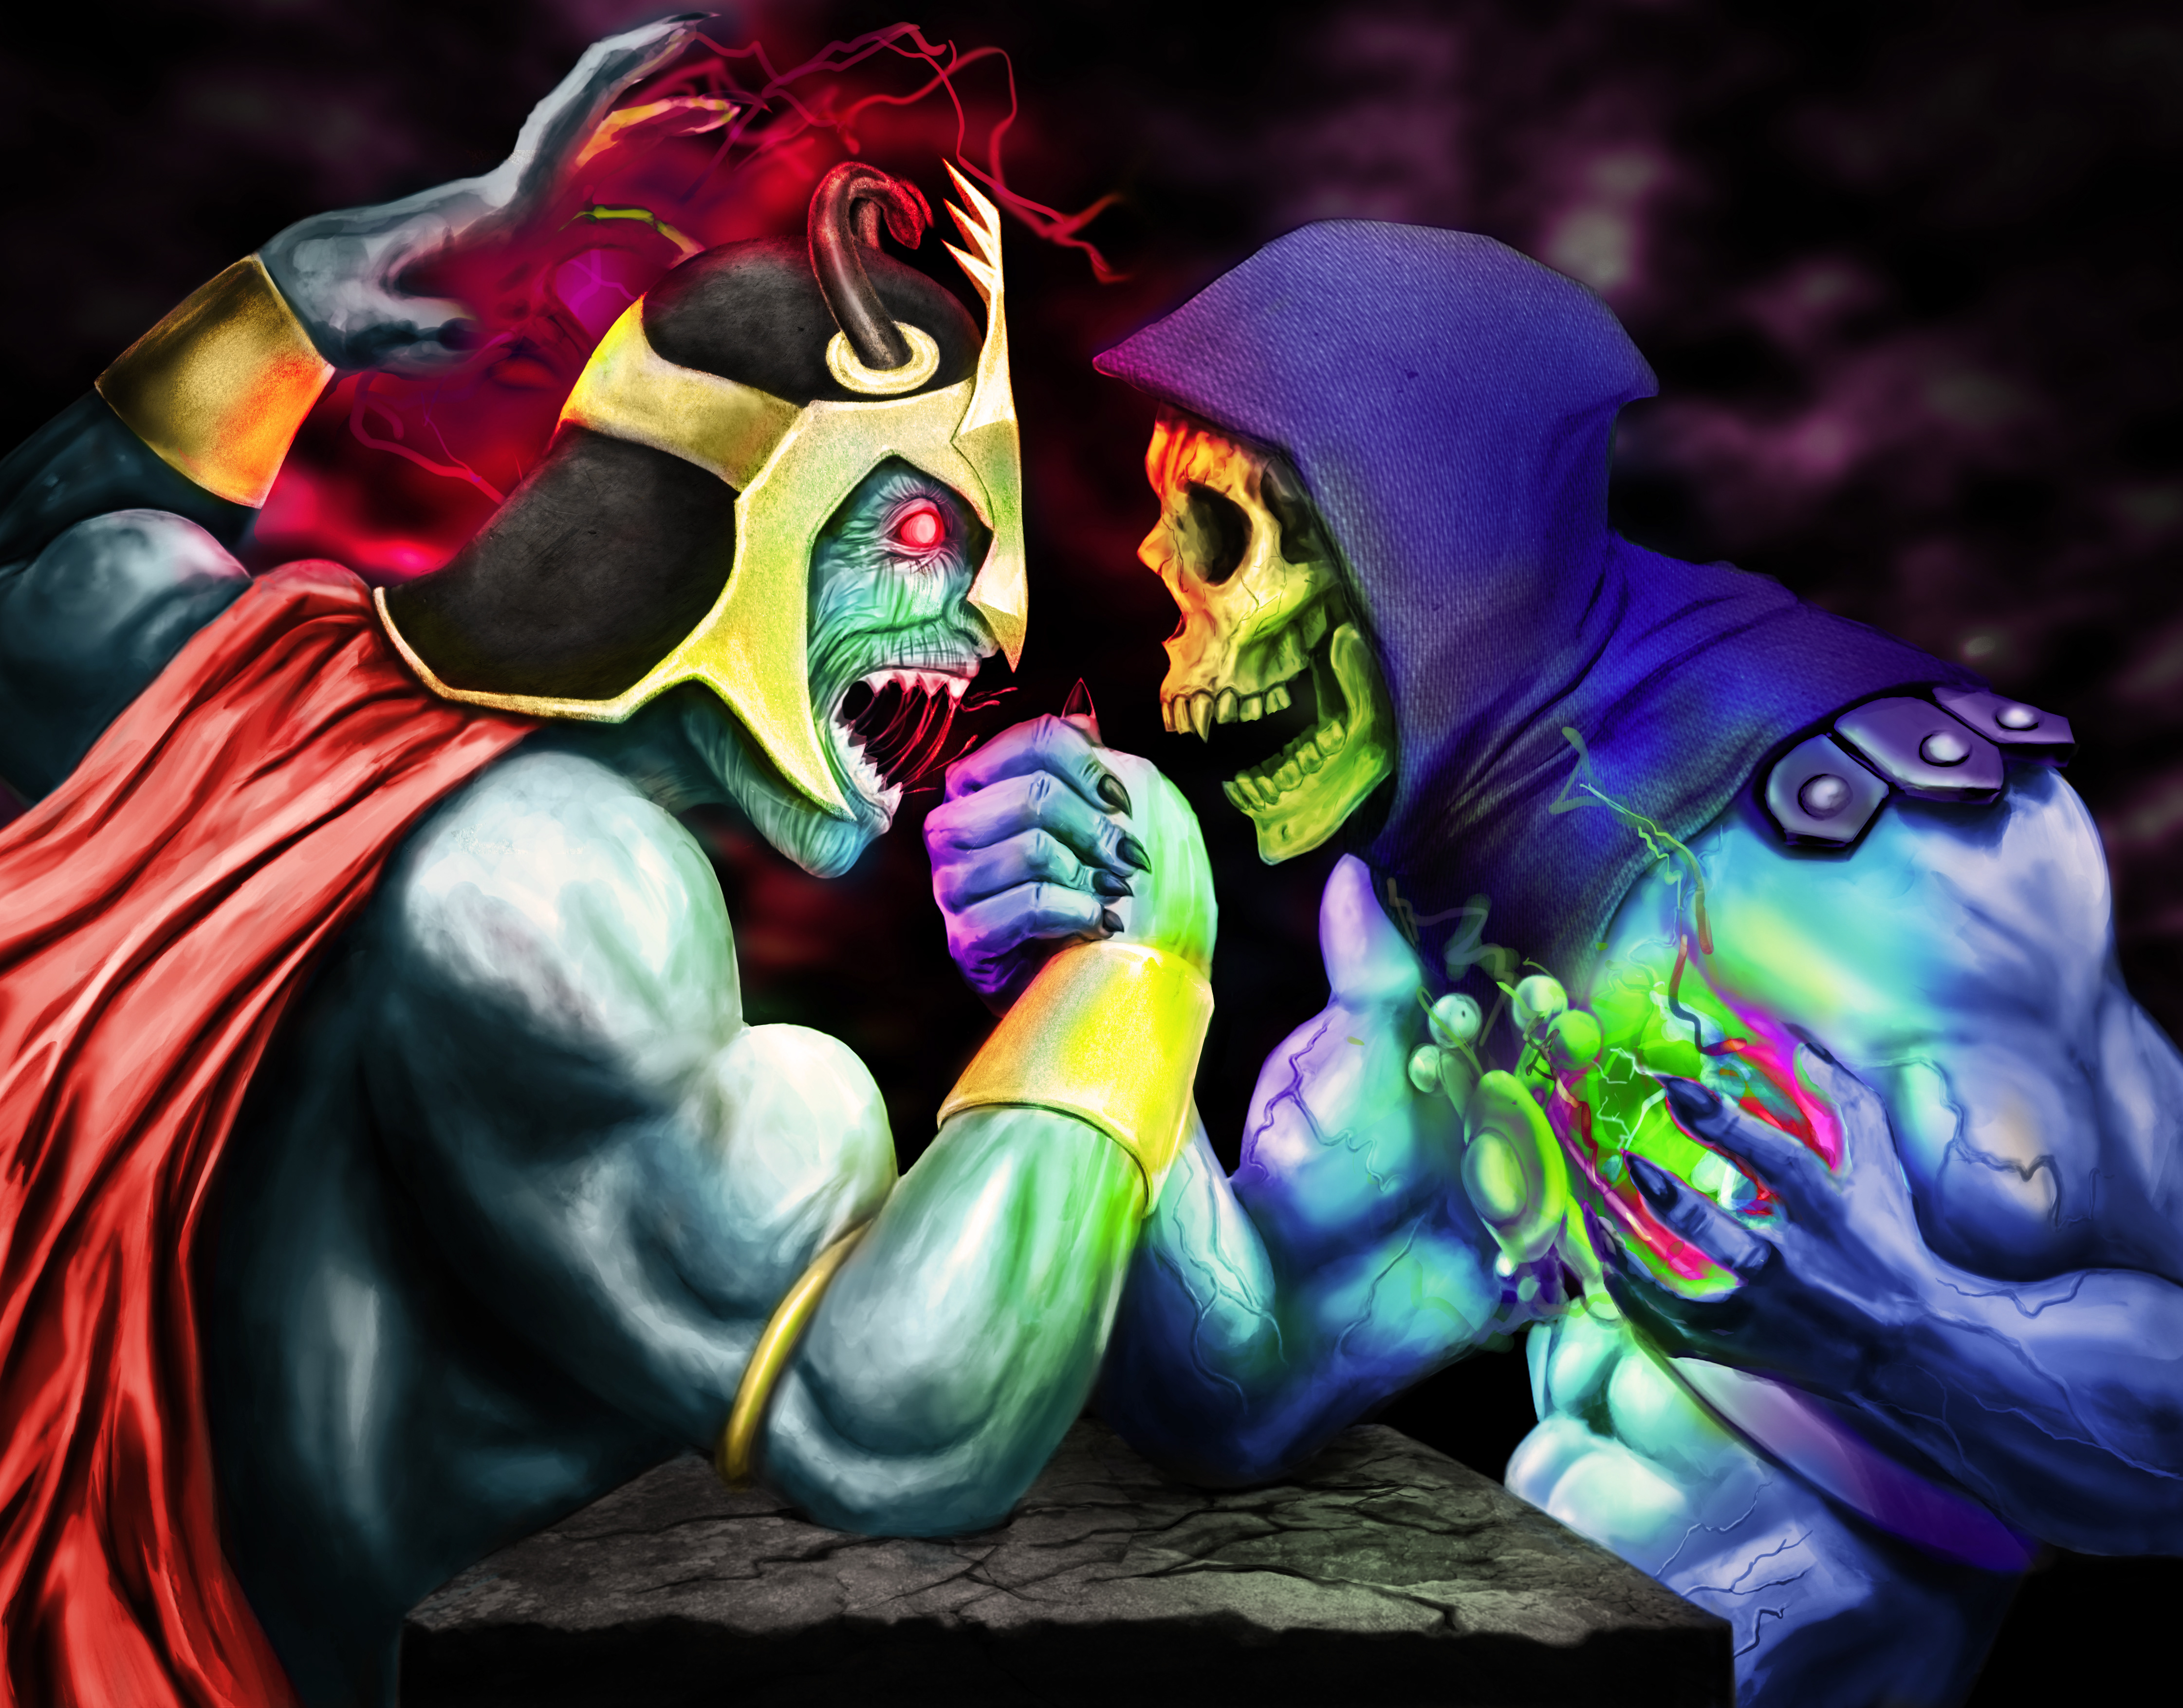 skeletor vs mumm ra - HD 1920×1358